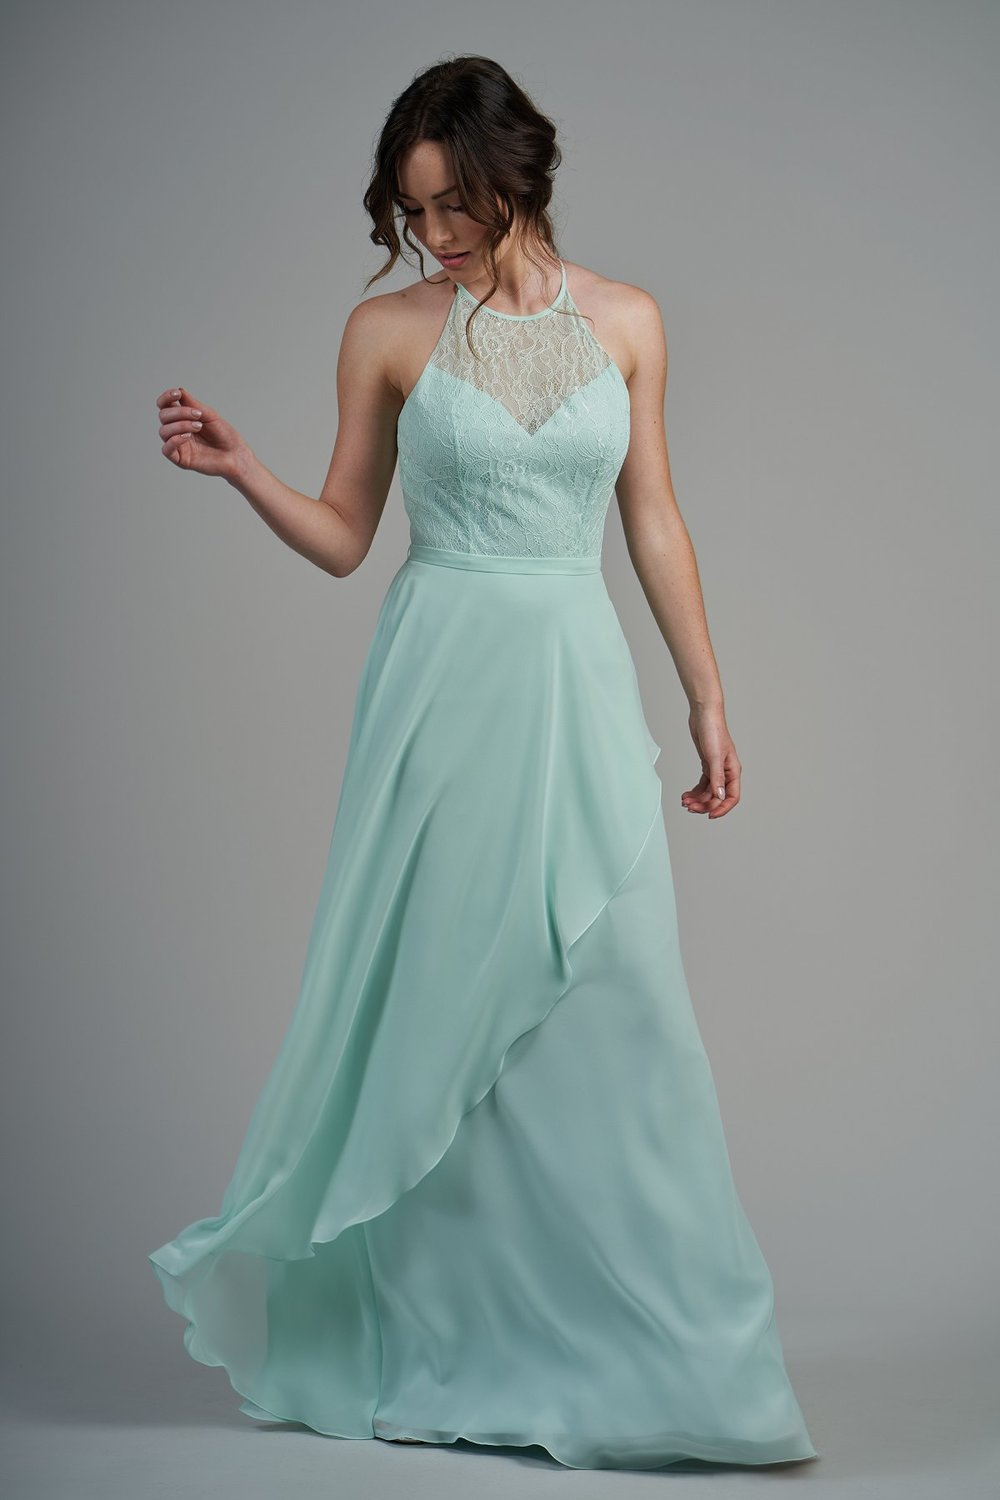 B213012 -  Pretty lace and poly chiffon floor length bridesmaid dress with a jewel neckline, open back bodice, and layered flowy skirt to complete the look.    Available in 22 colors